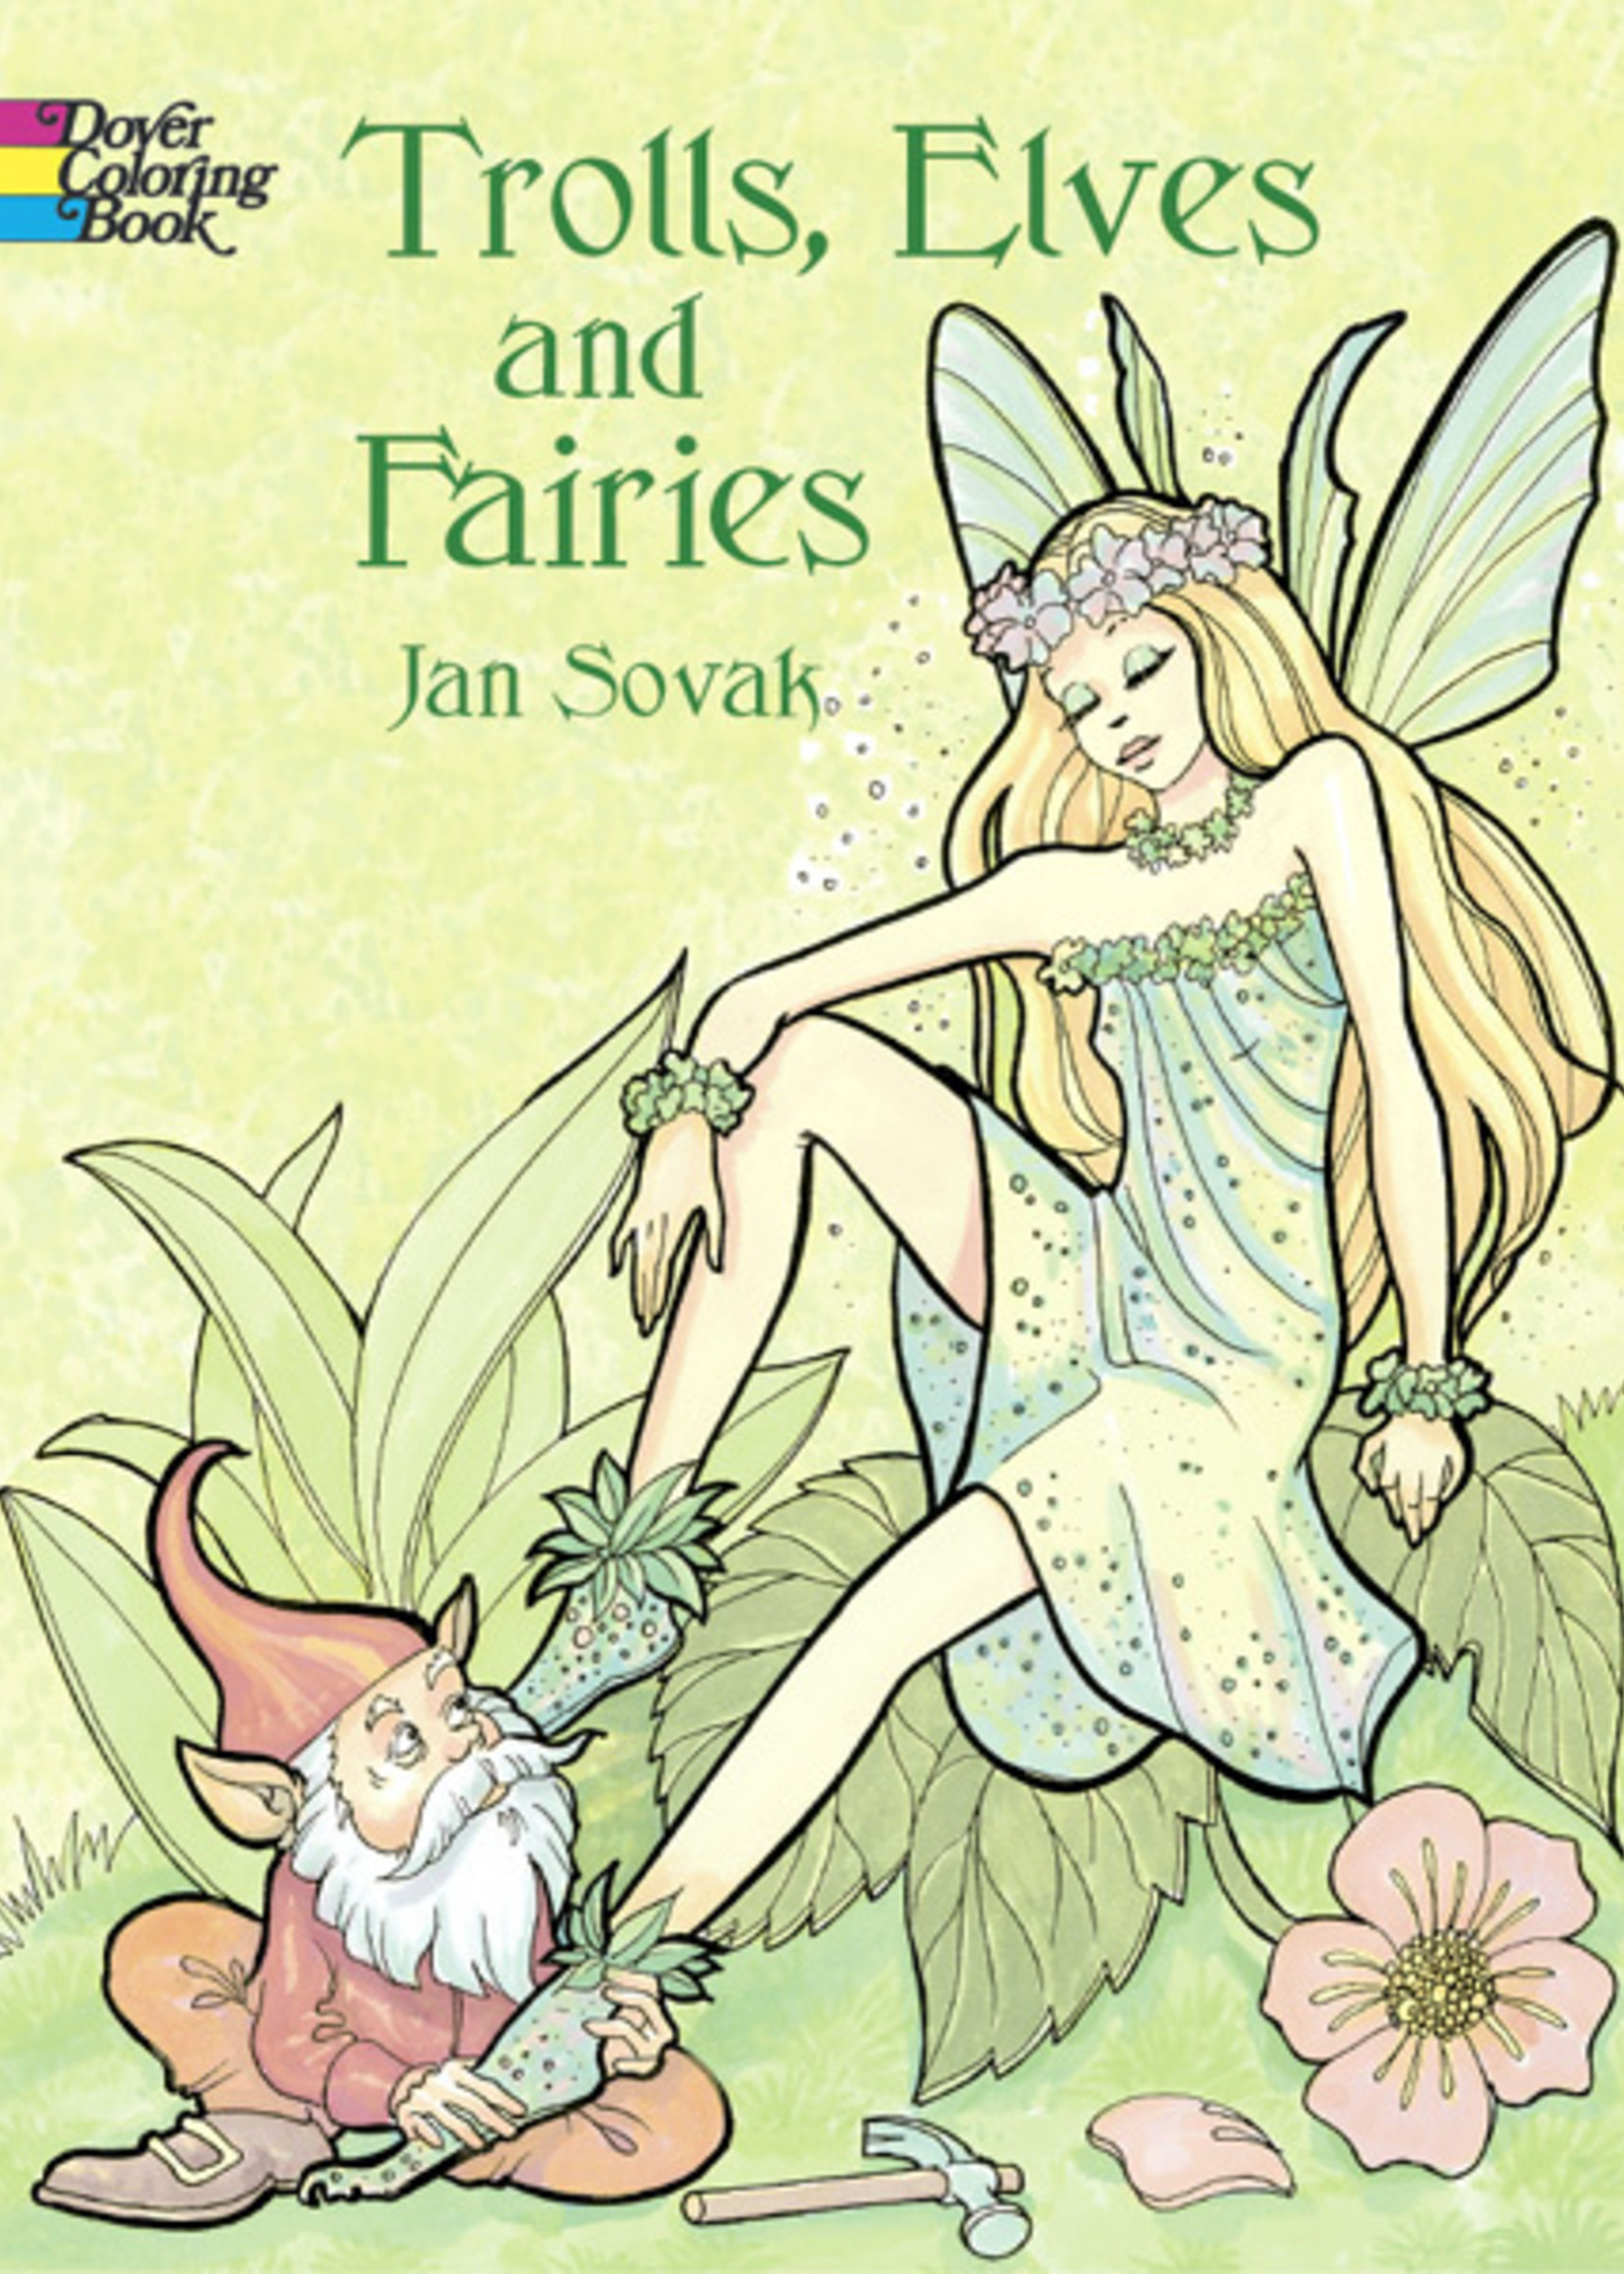 Trolls, Elves and Fairies Coloring Book - Paperback